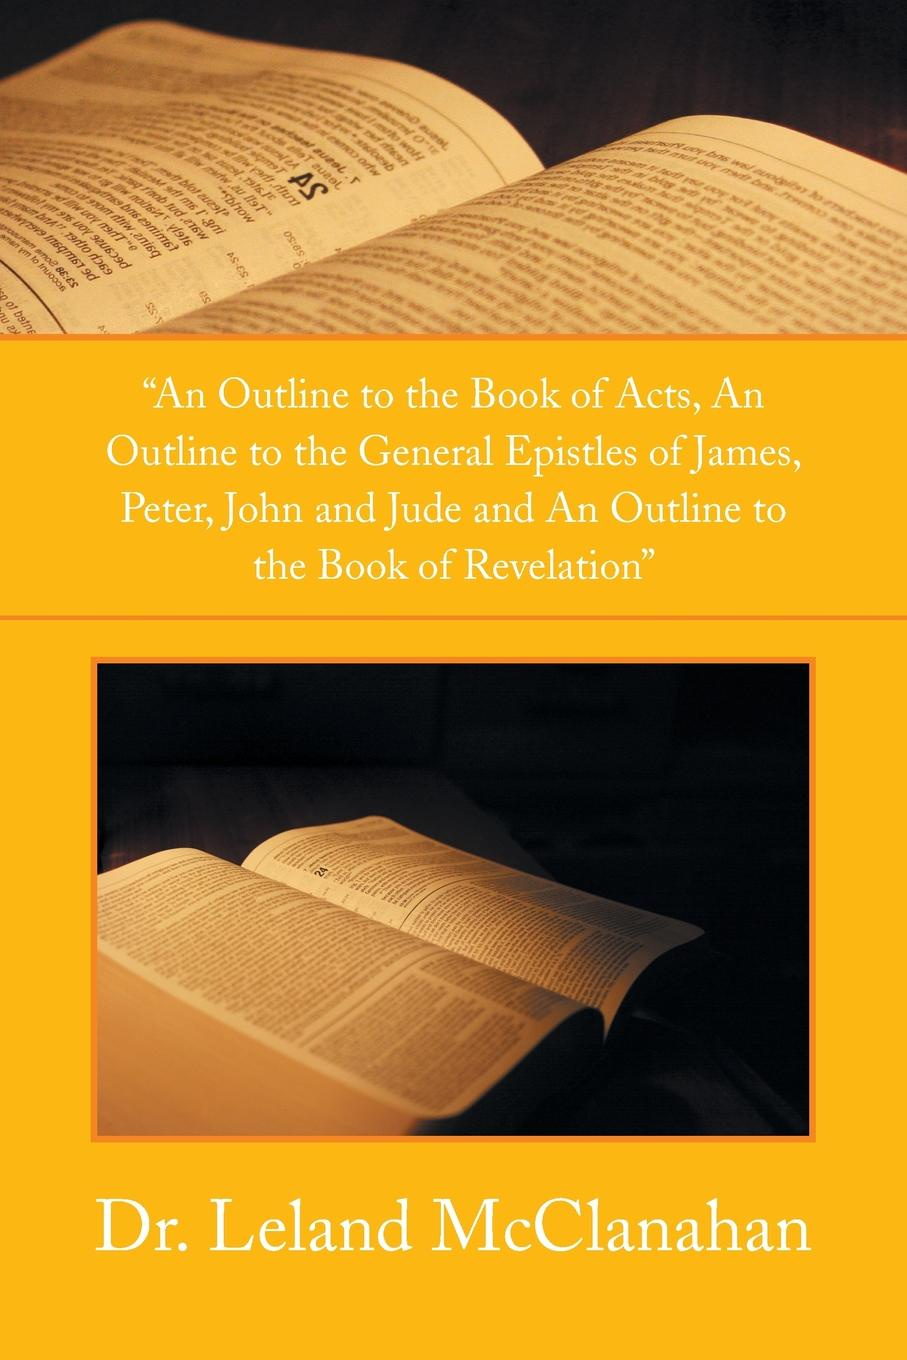 Leland McClanahan An Outline to the Book of Acts, an Outline to the General Epistles of James, Peter, John and Jude and an Outline to the Book of Revelation baring maurice an outline of russian literature